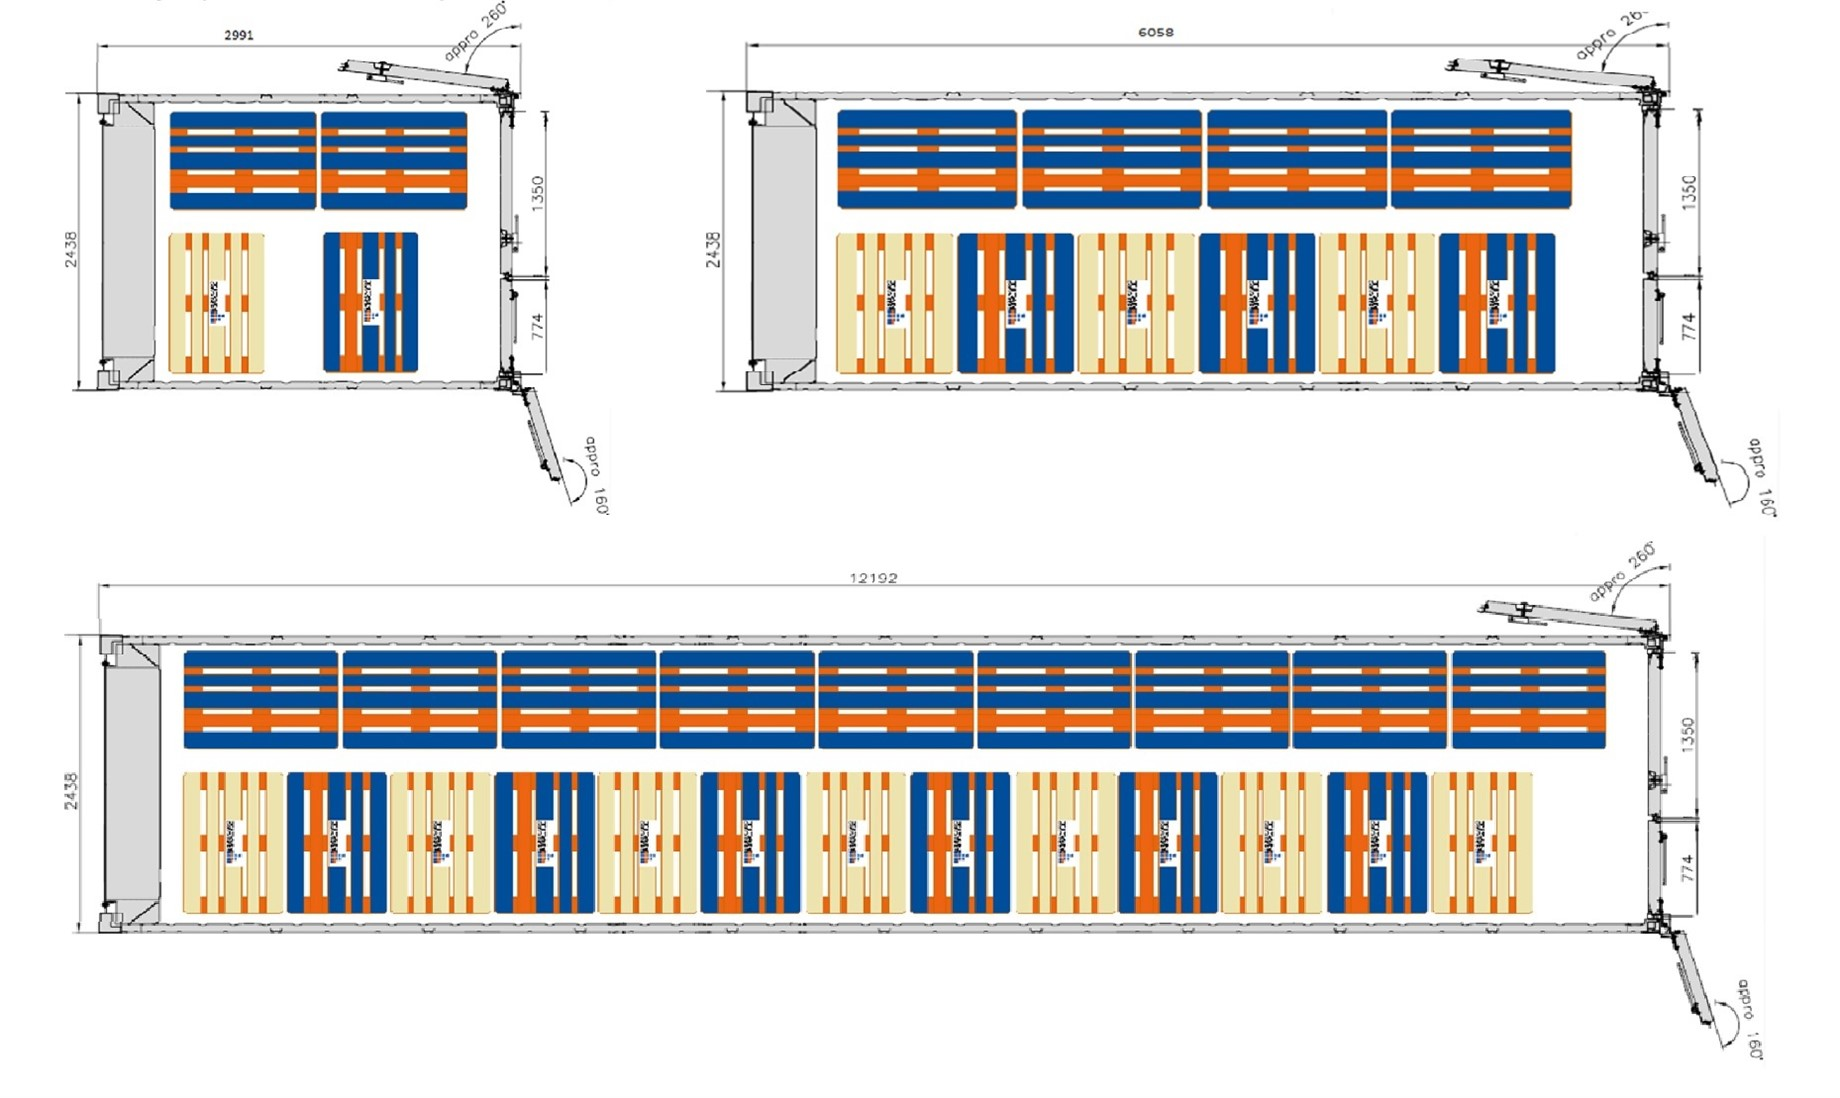 <h3>10' - 20' - 40' ArcticStore cold storage containers pallet plan. eu pallets 4 - 10 - 22 or uk pallets 4 - 9 - 20 &nbsp;</h3>